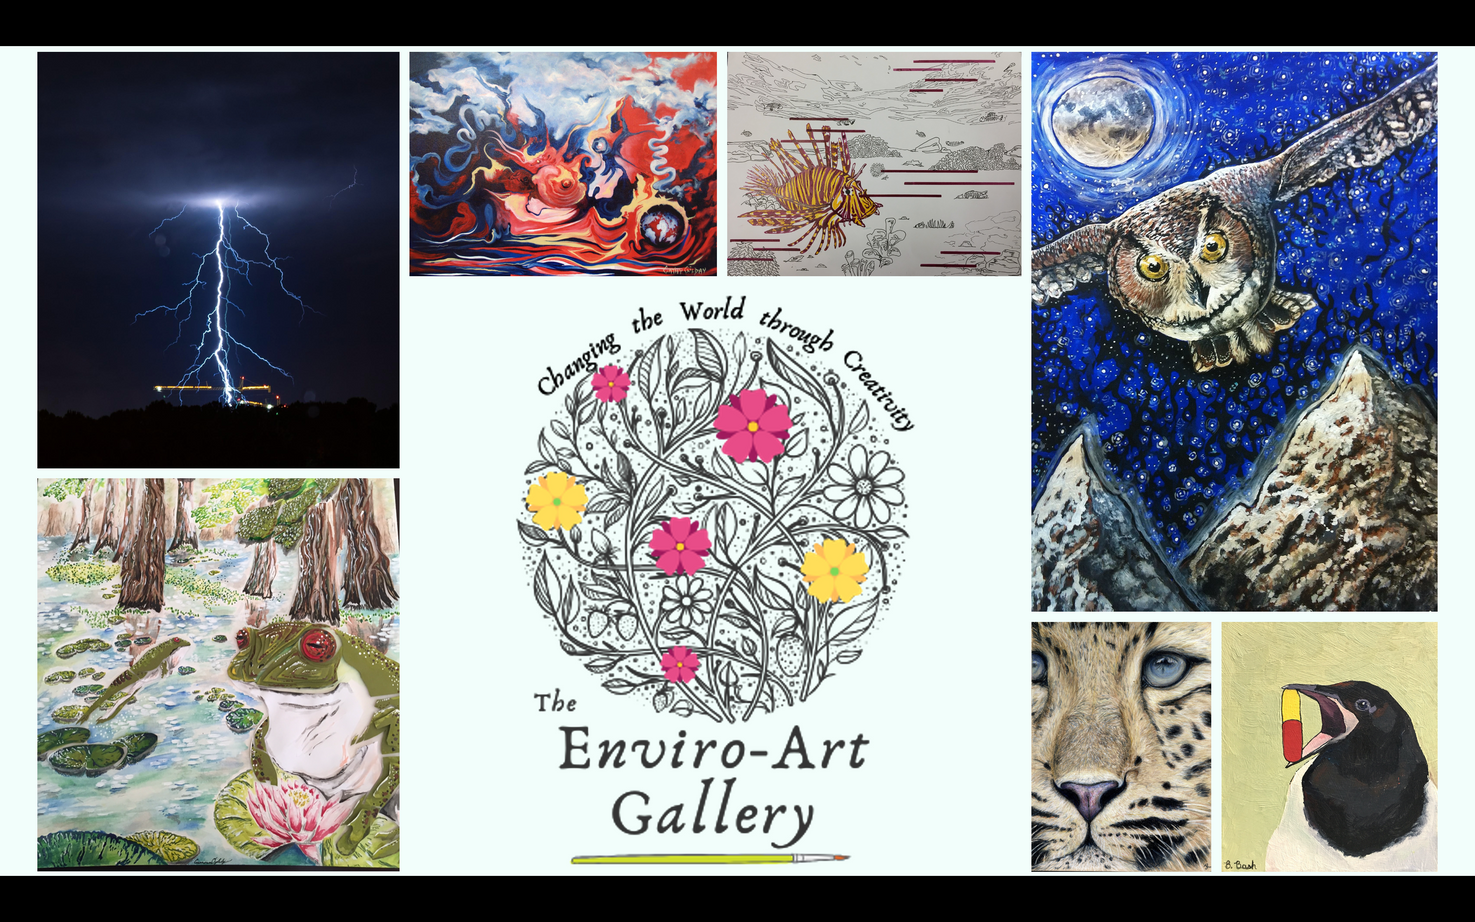 The Enviro-Art Gallery hopes to connect people to nature through an emotive, interpretative multimedia method of communication. It was created to depict through the eyes of an advocate or an artist, how the environment connects to us all and how other experience environmental issues in other parts of the world.